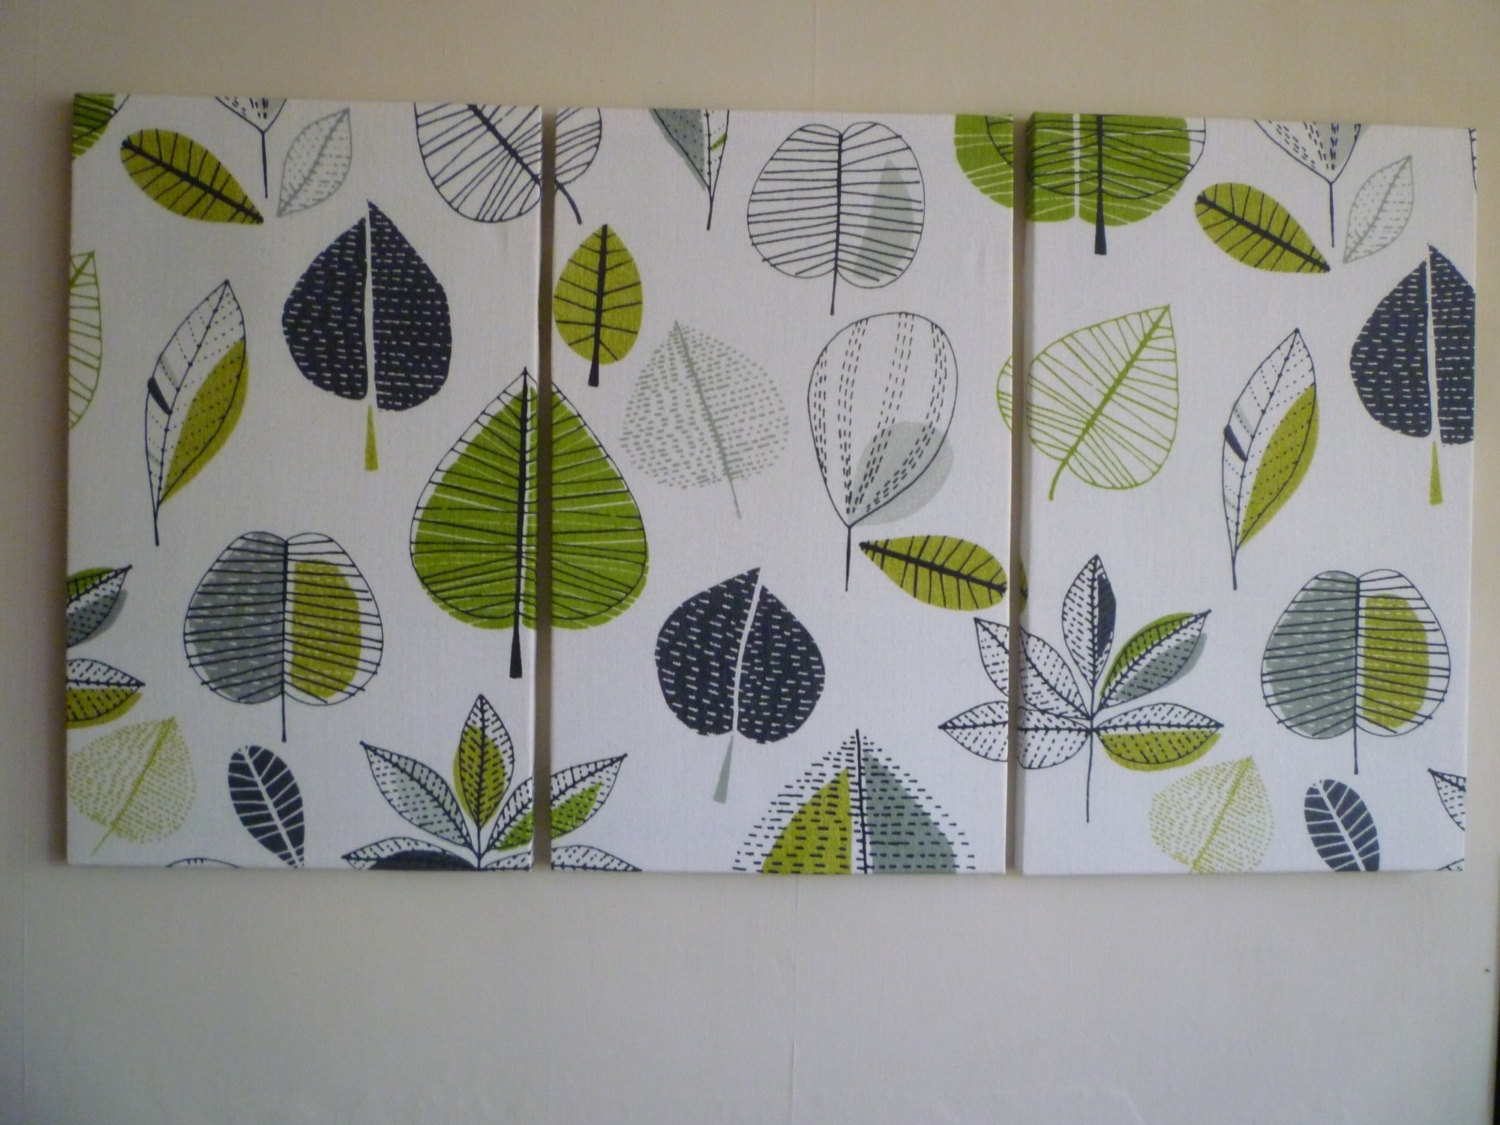 Wall Art Designs: Fabric Wall Art Big Lime Green Fabric Wall Art Inside Best And Newest Canvas And Fabric Wall Art (View 13 of 15)